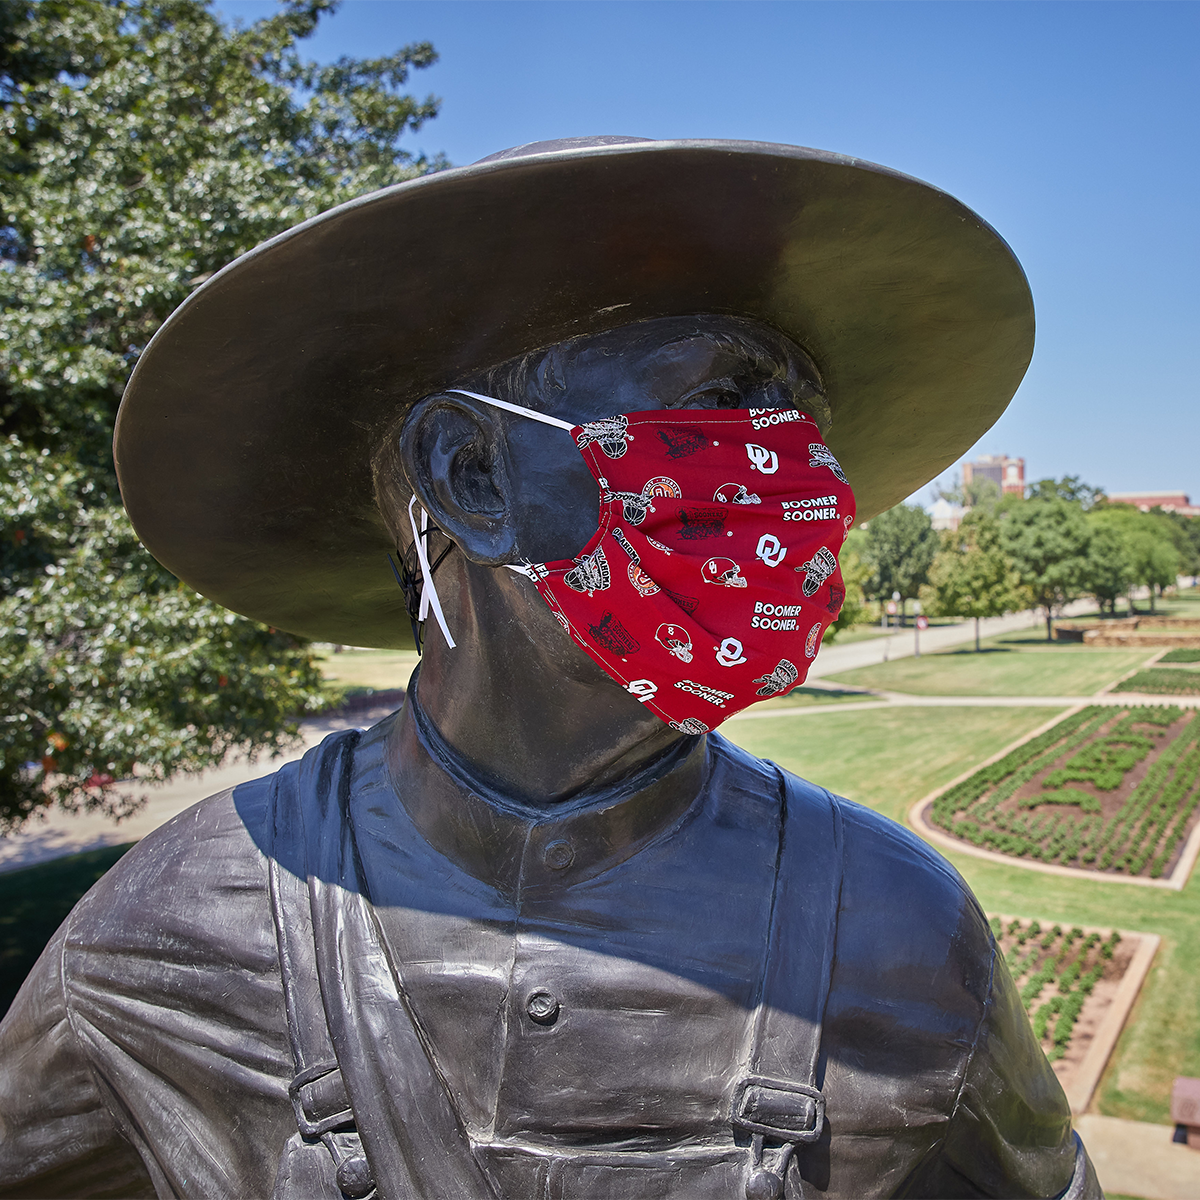 OU Seed Sower wearing a cloth mask